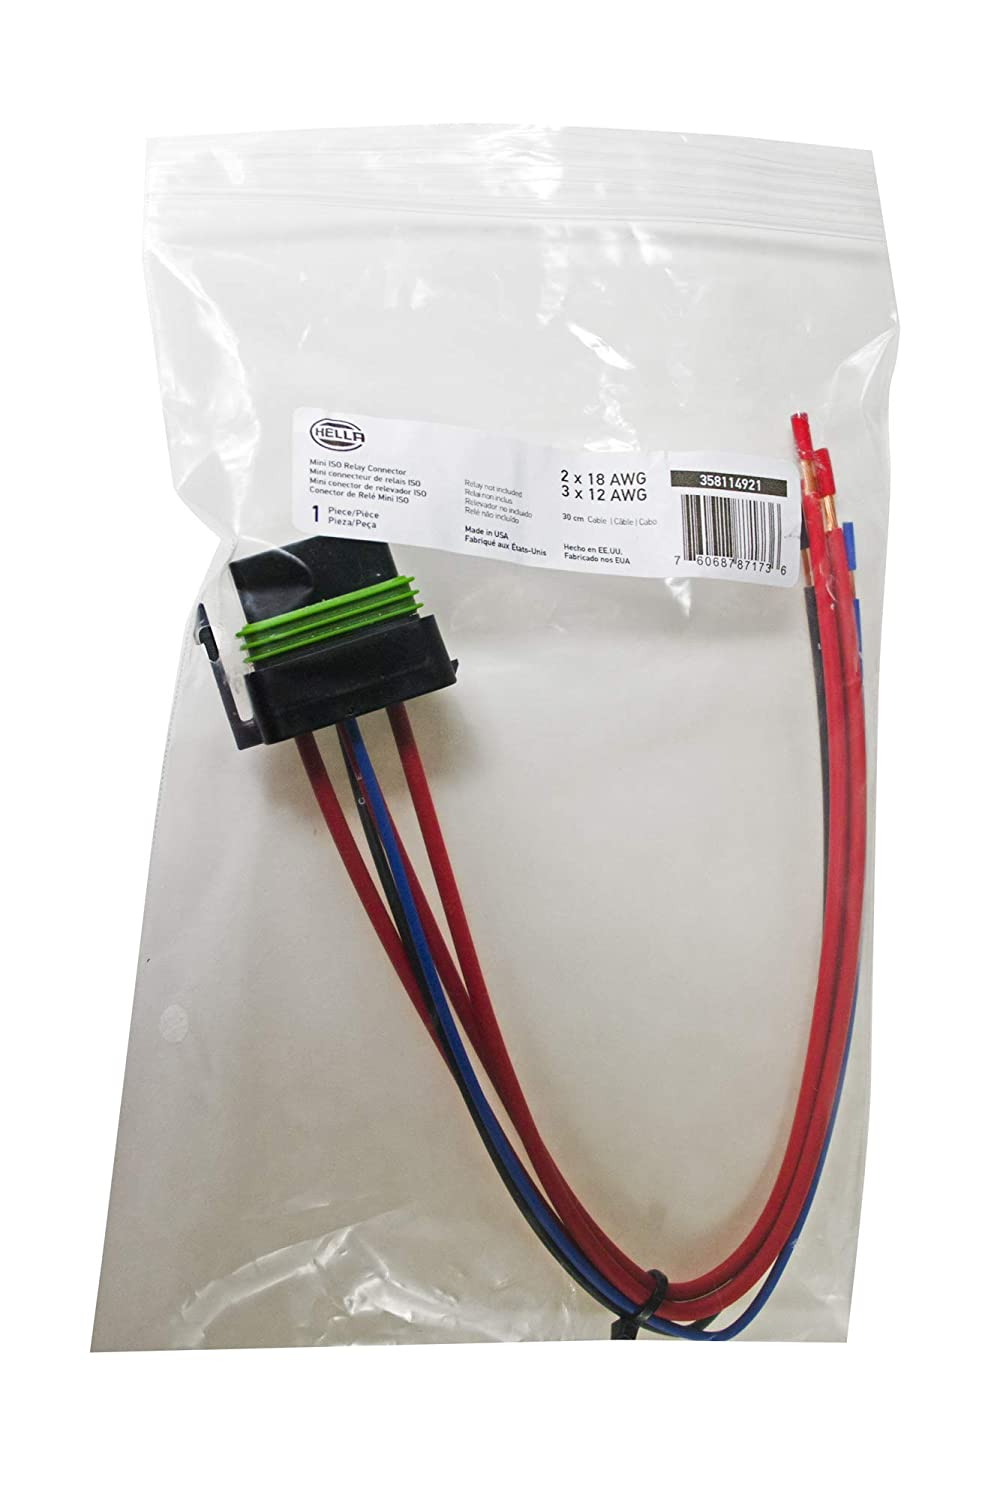 relay wiring diagram 7234 wiring library amazon com hella h84709001 iso weatherproof relay connector 12 leads automotive